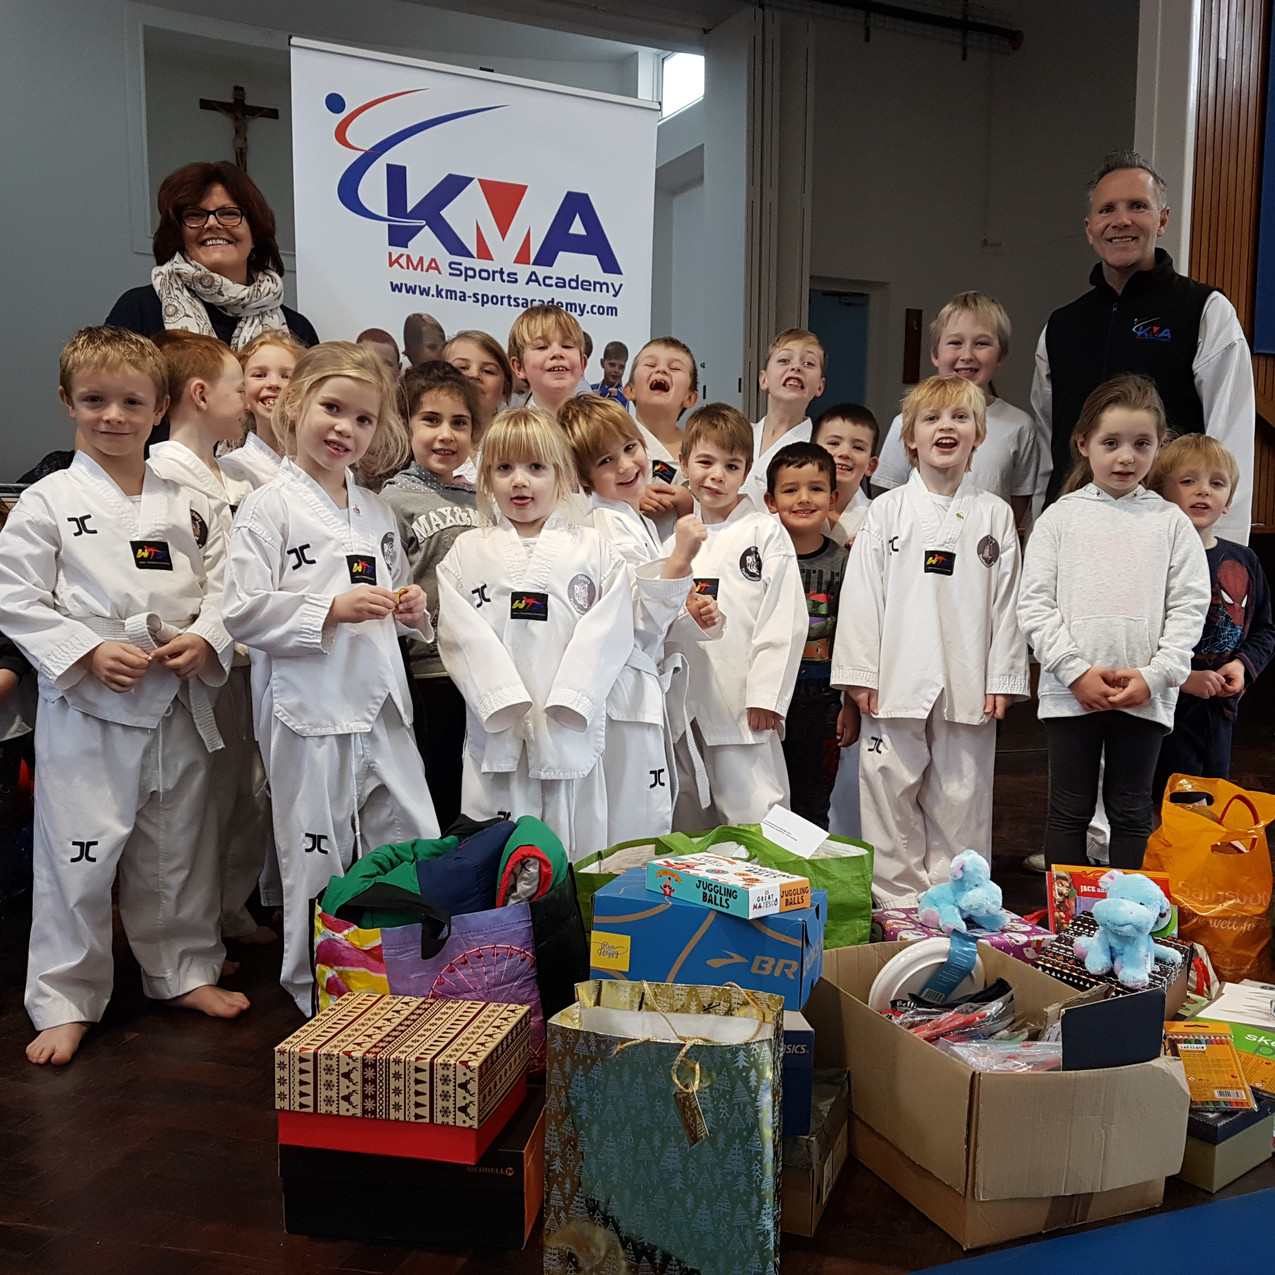 KMA Sports Academy Kids with a cause